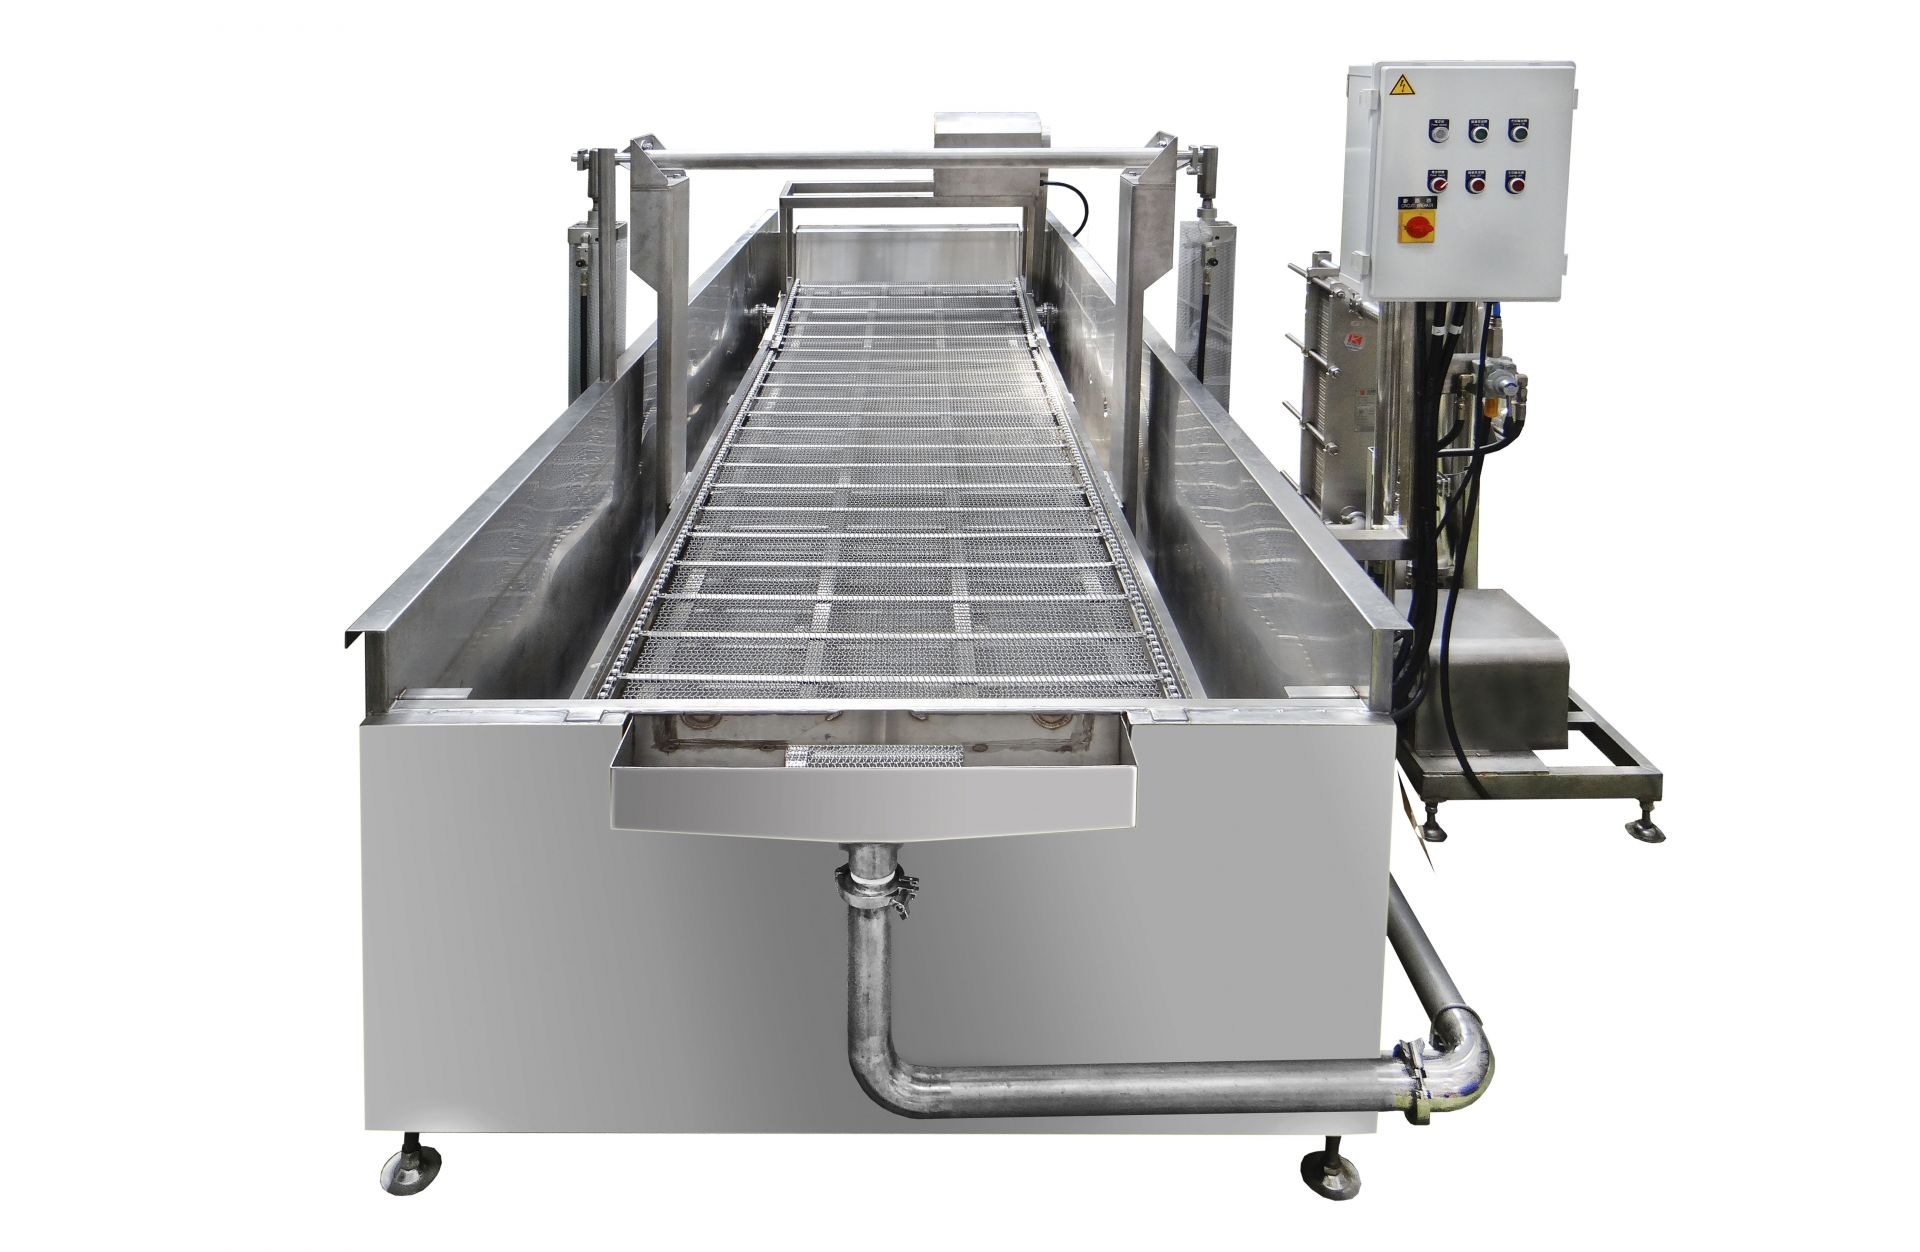 Automatic Tofu Cooling Conveyor Machine